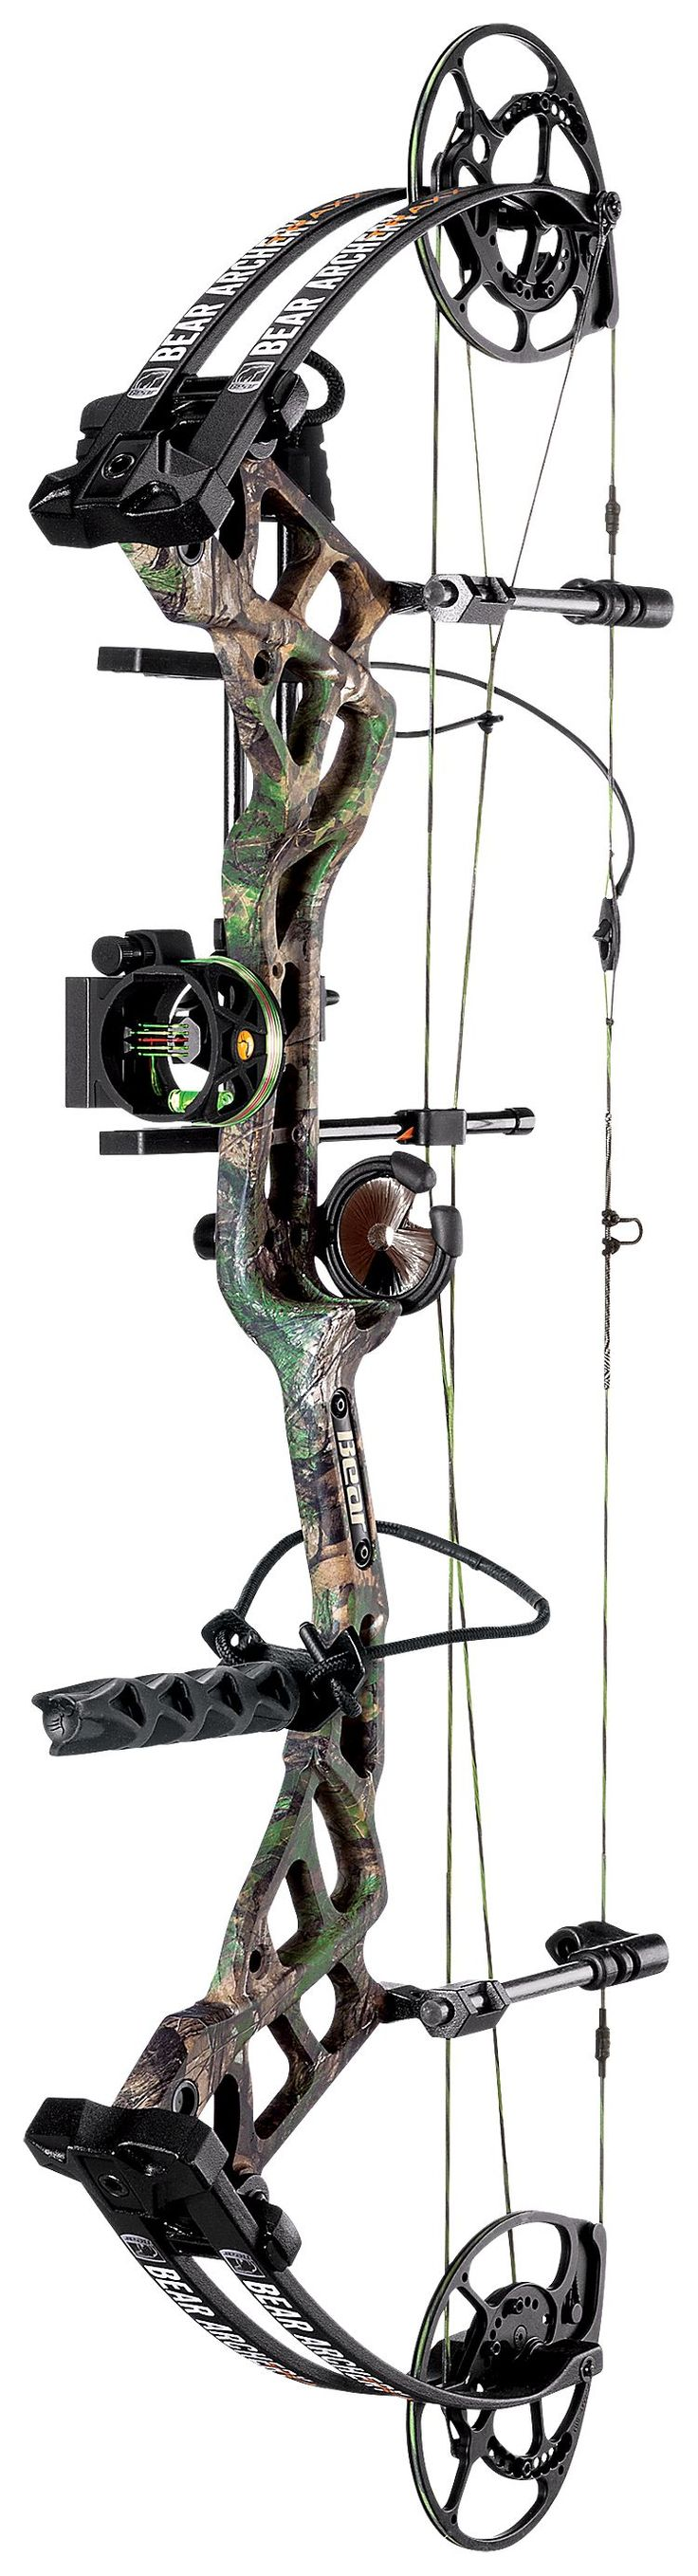 Bear Archery Traxx RTH (Ready To Hunt) Compound Bow Package | Bass Pro Shops